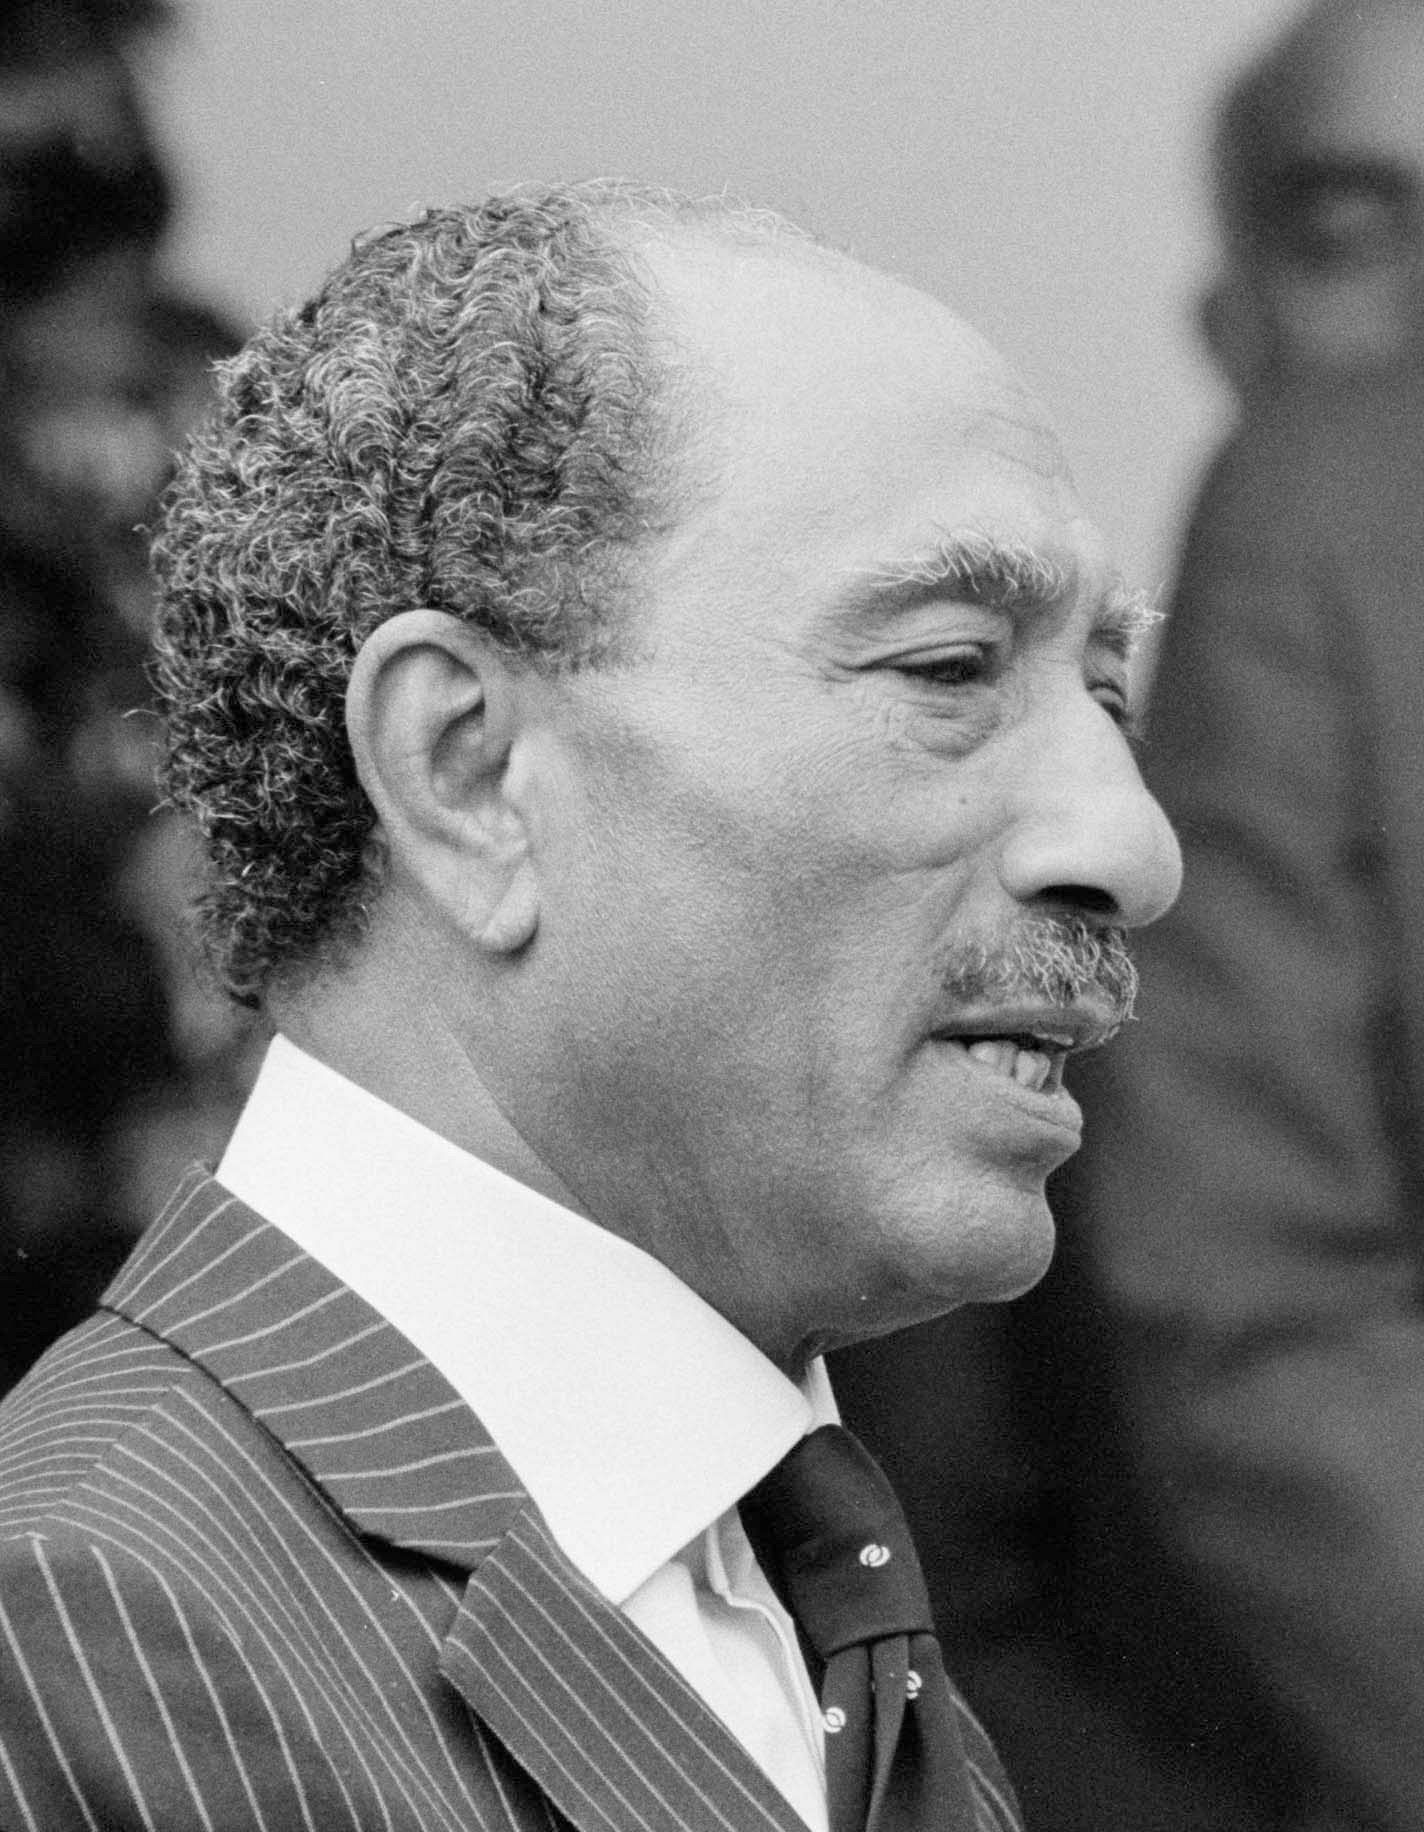 Egyptian President Anwar Sadat, 1980. Photo: US Library of Congress/Wikimedia commons